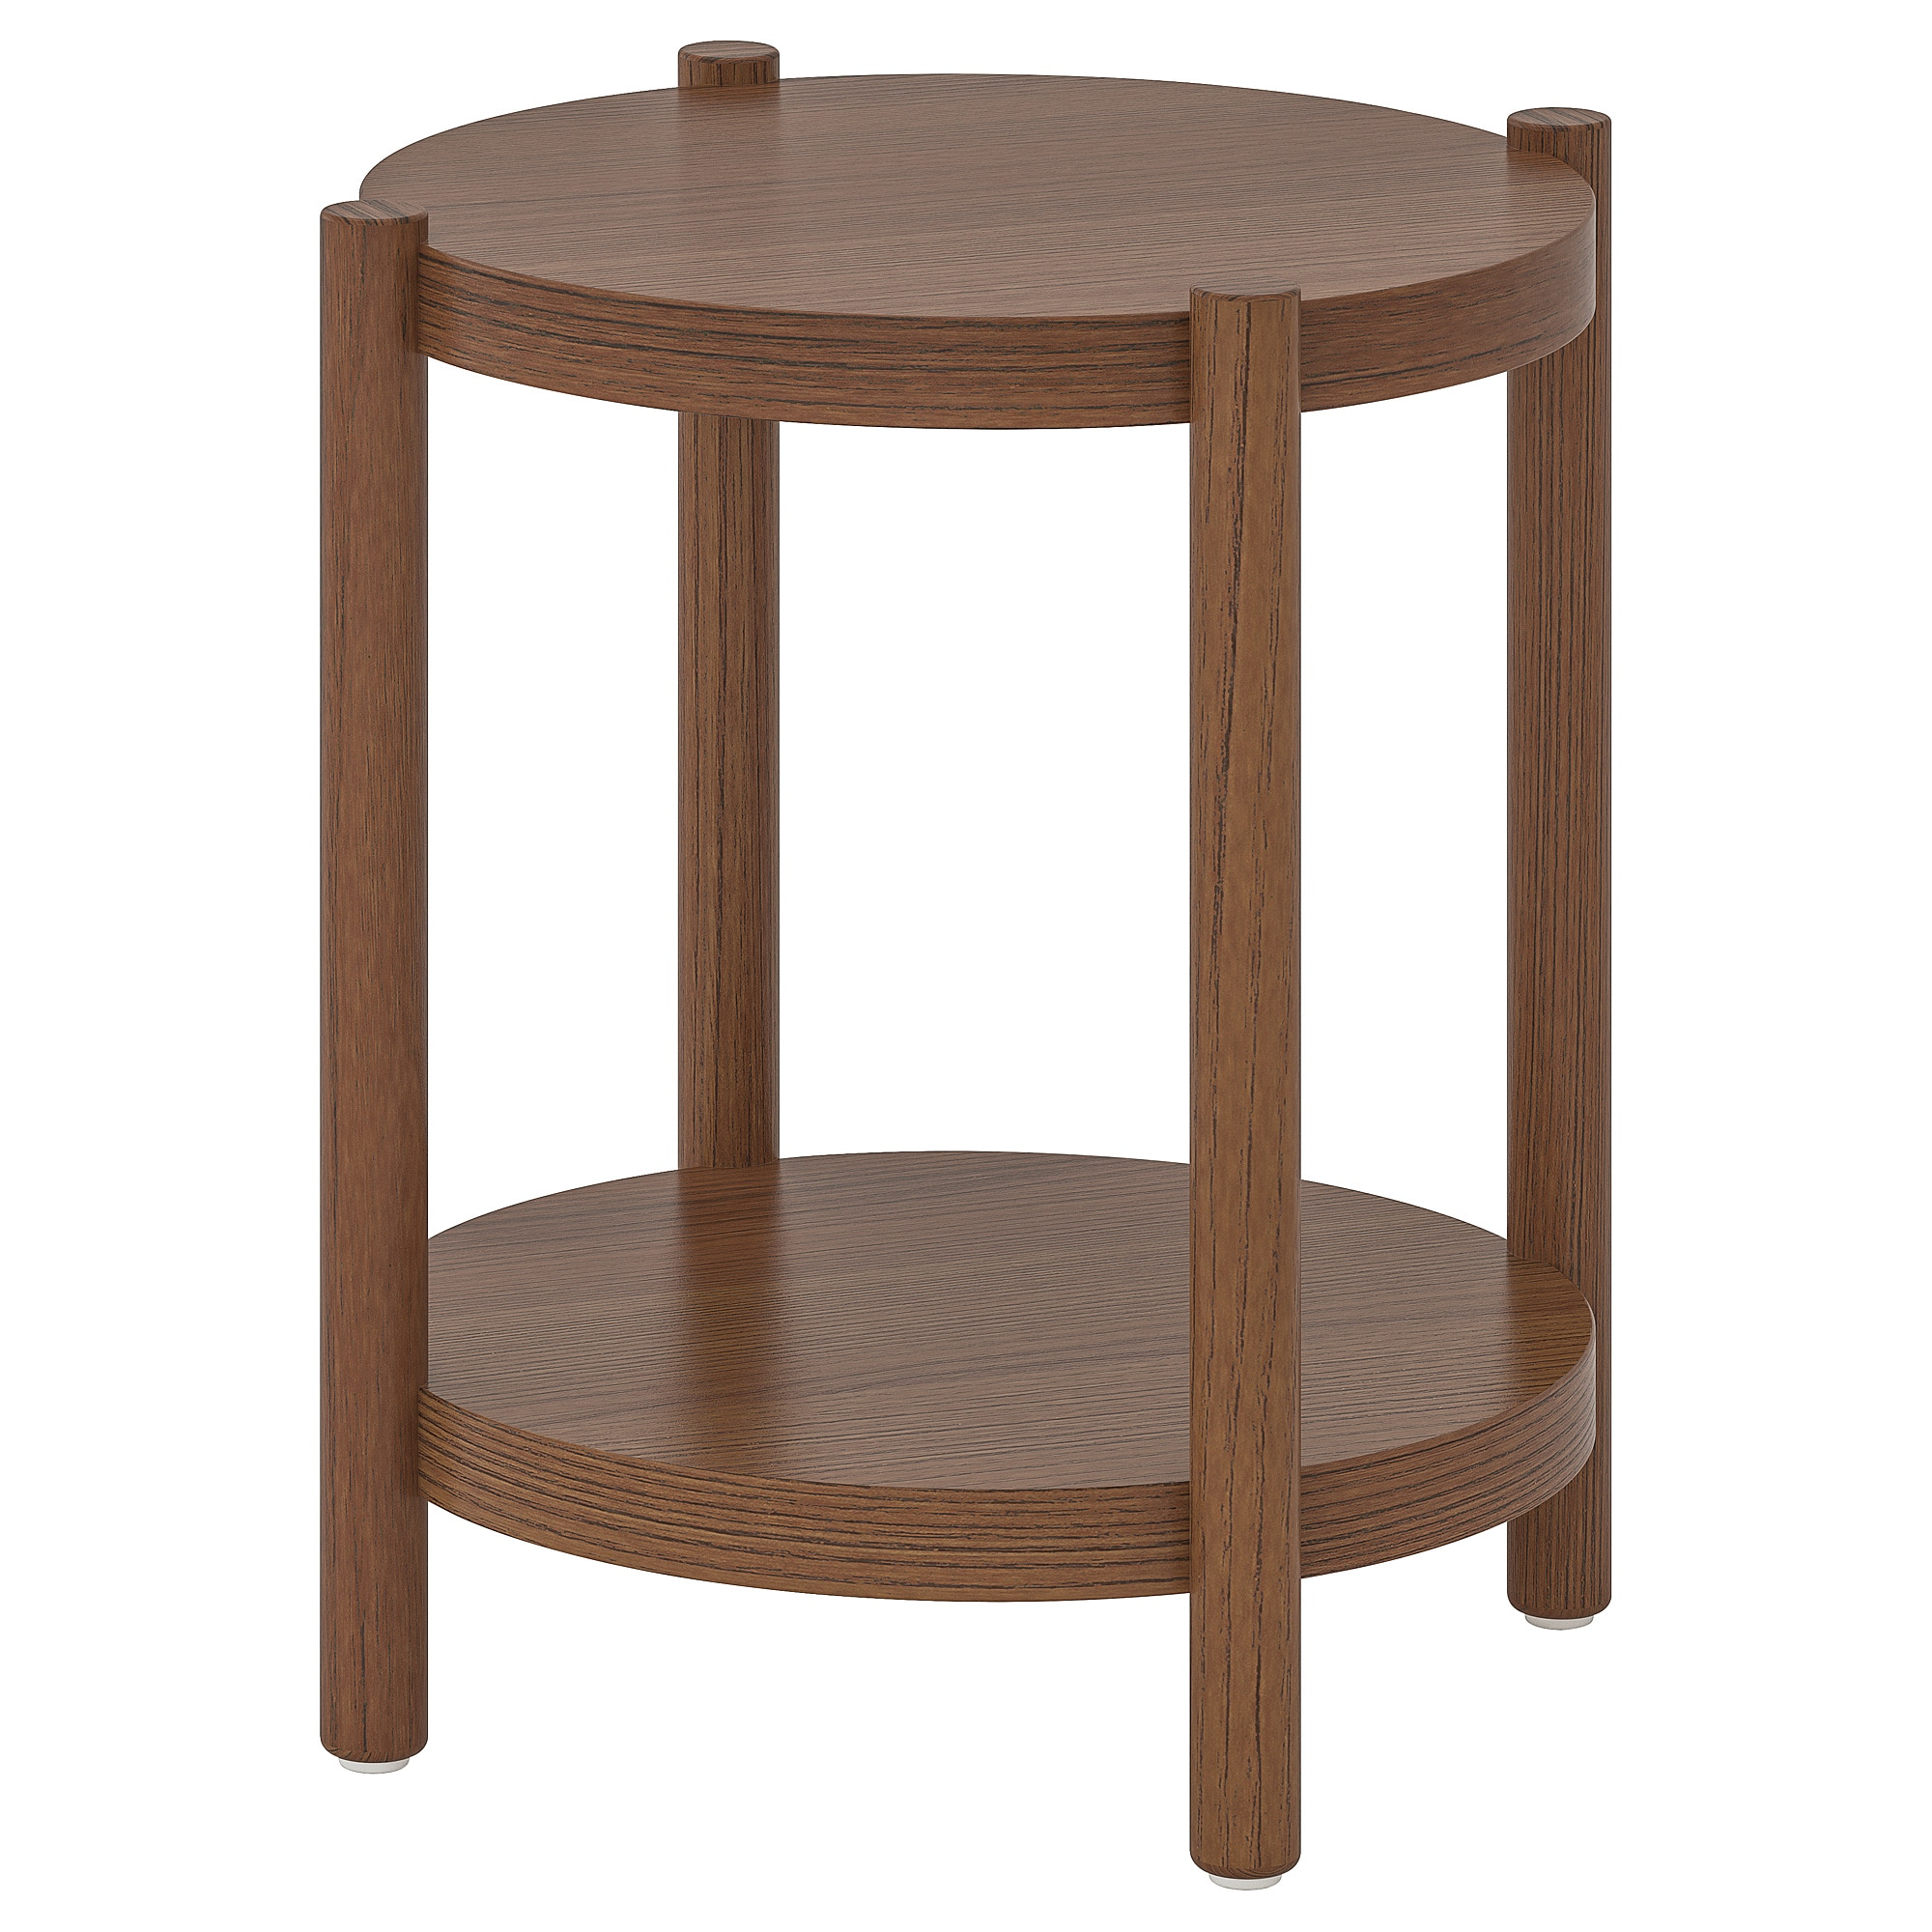 LISTERBY Side table - white stained oak - IKEA